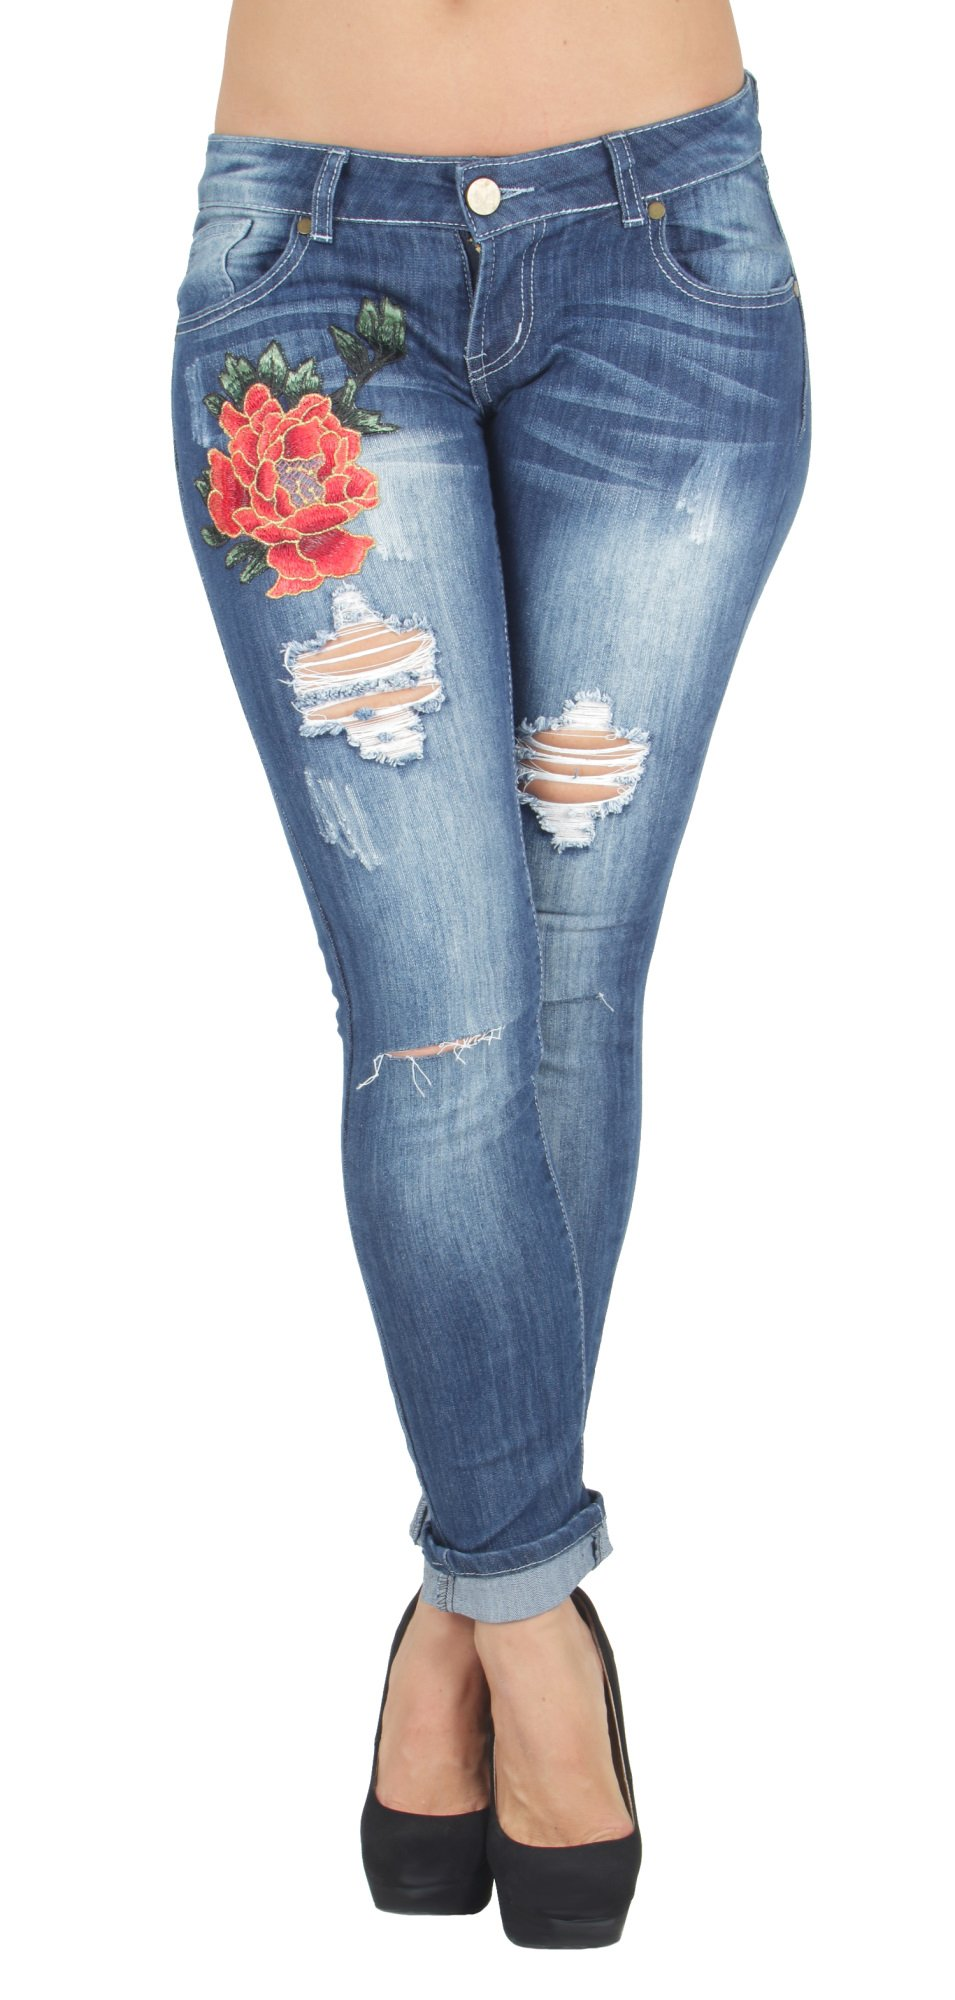 QP7-7Q037S - Premium Floral Patched Destroyed Ripped Roll-up Boyfriend Fit Jeans in Washed Blue Size M